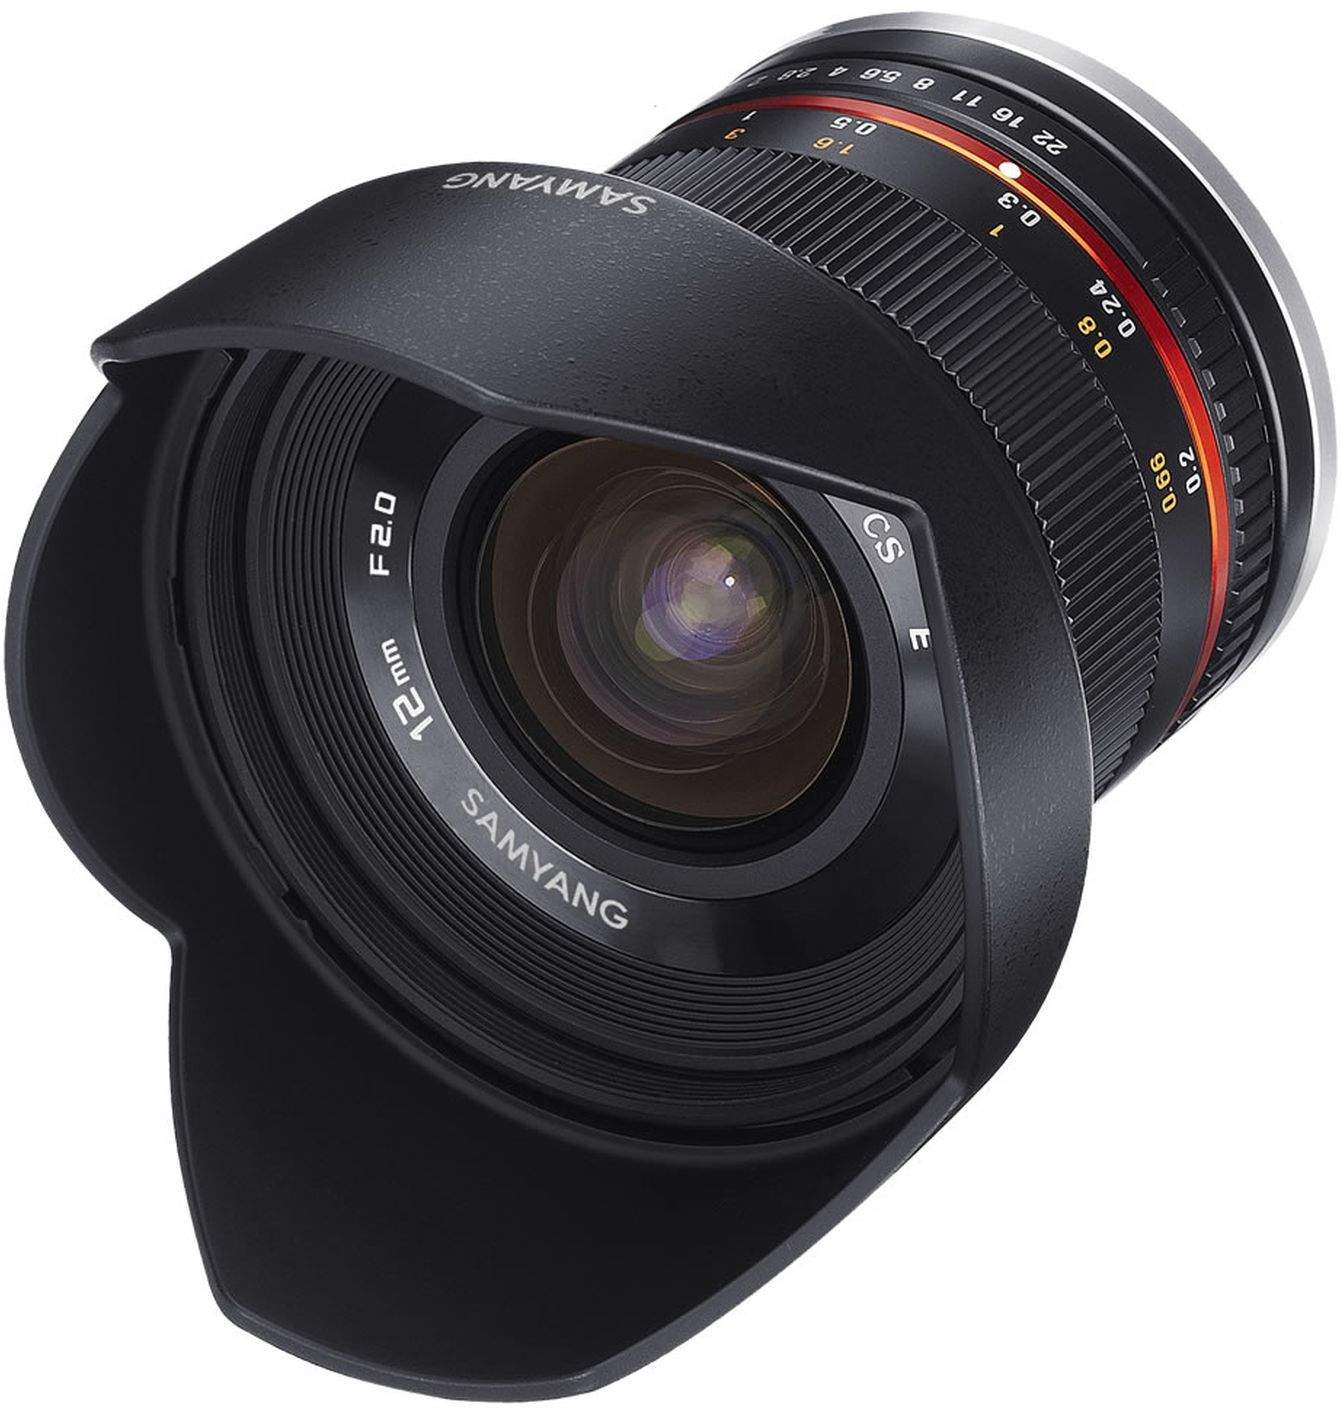 Samyang 12mm F2.0 UMC II APS-C Canon M - Black Camera Lens main image